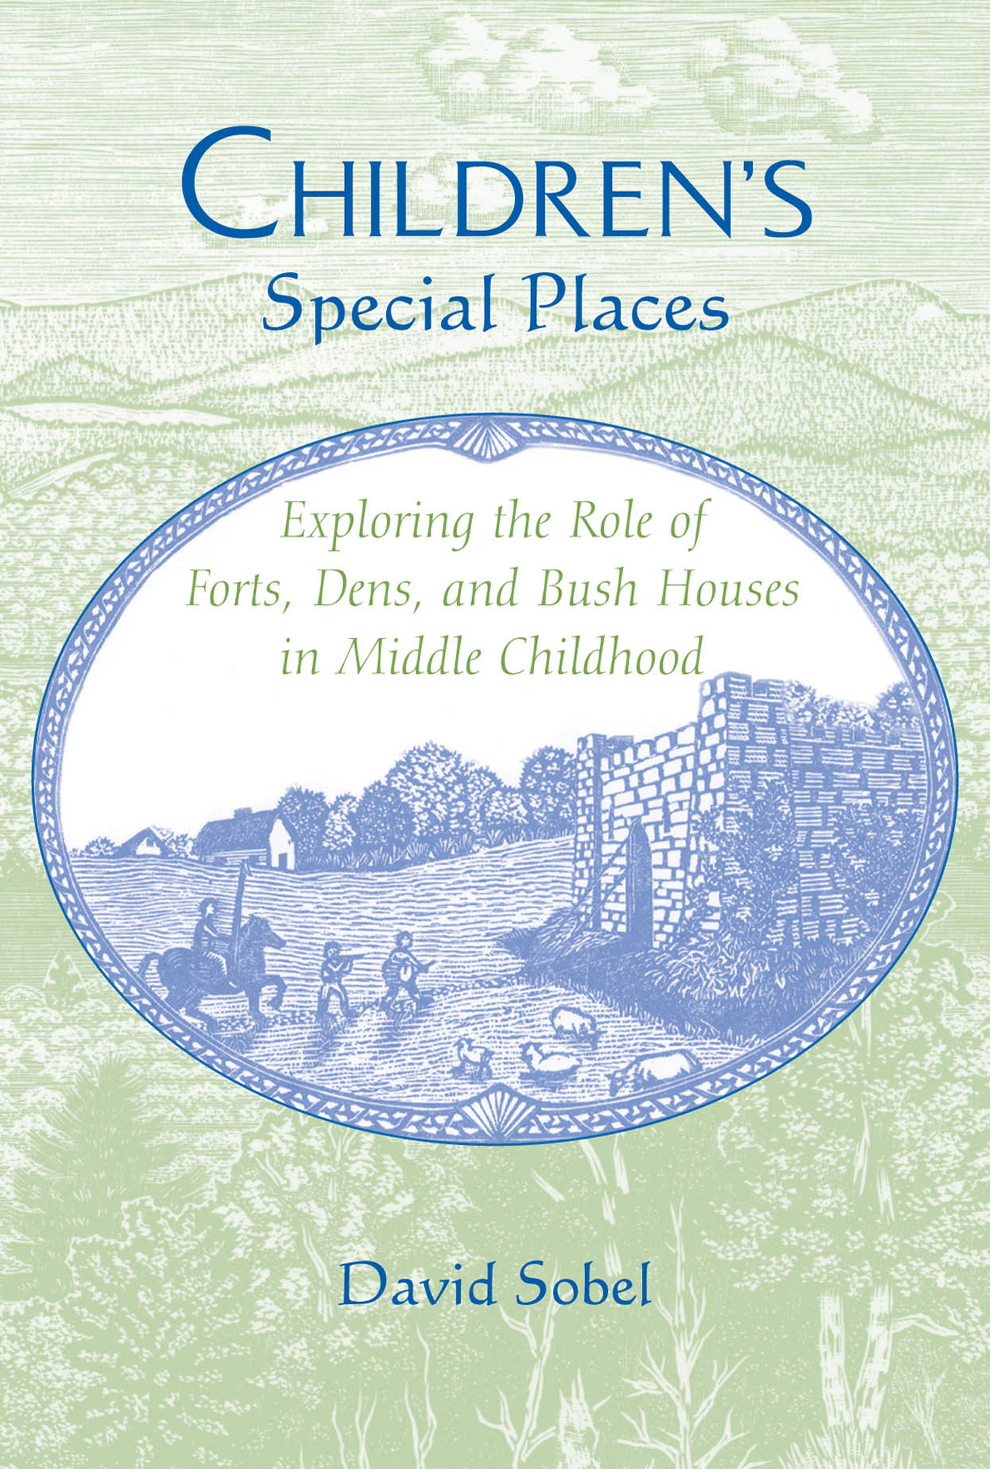 Children's Special Places